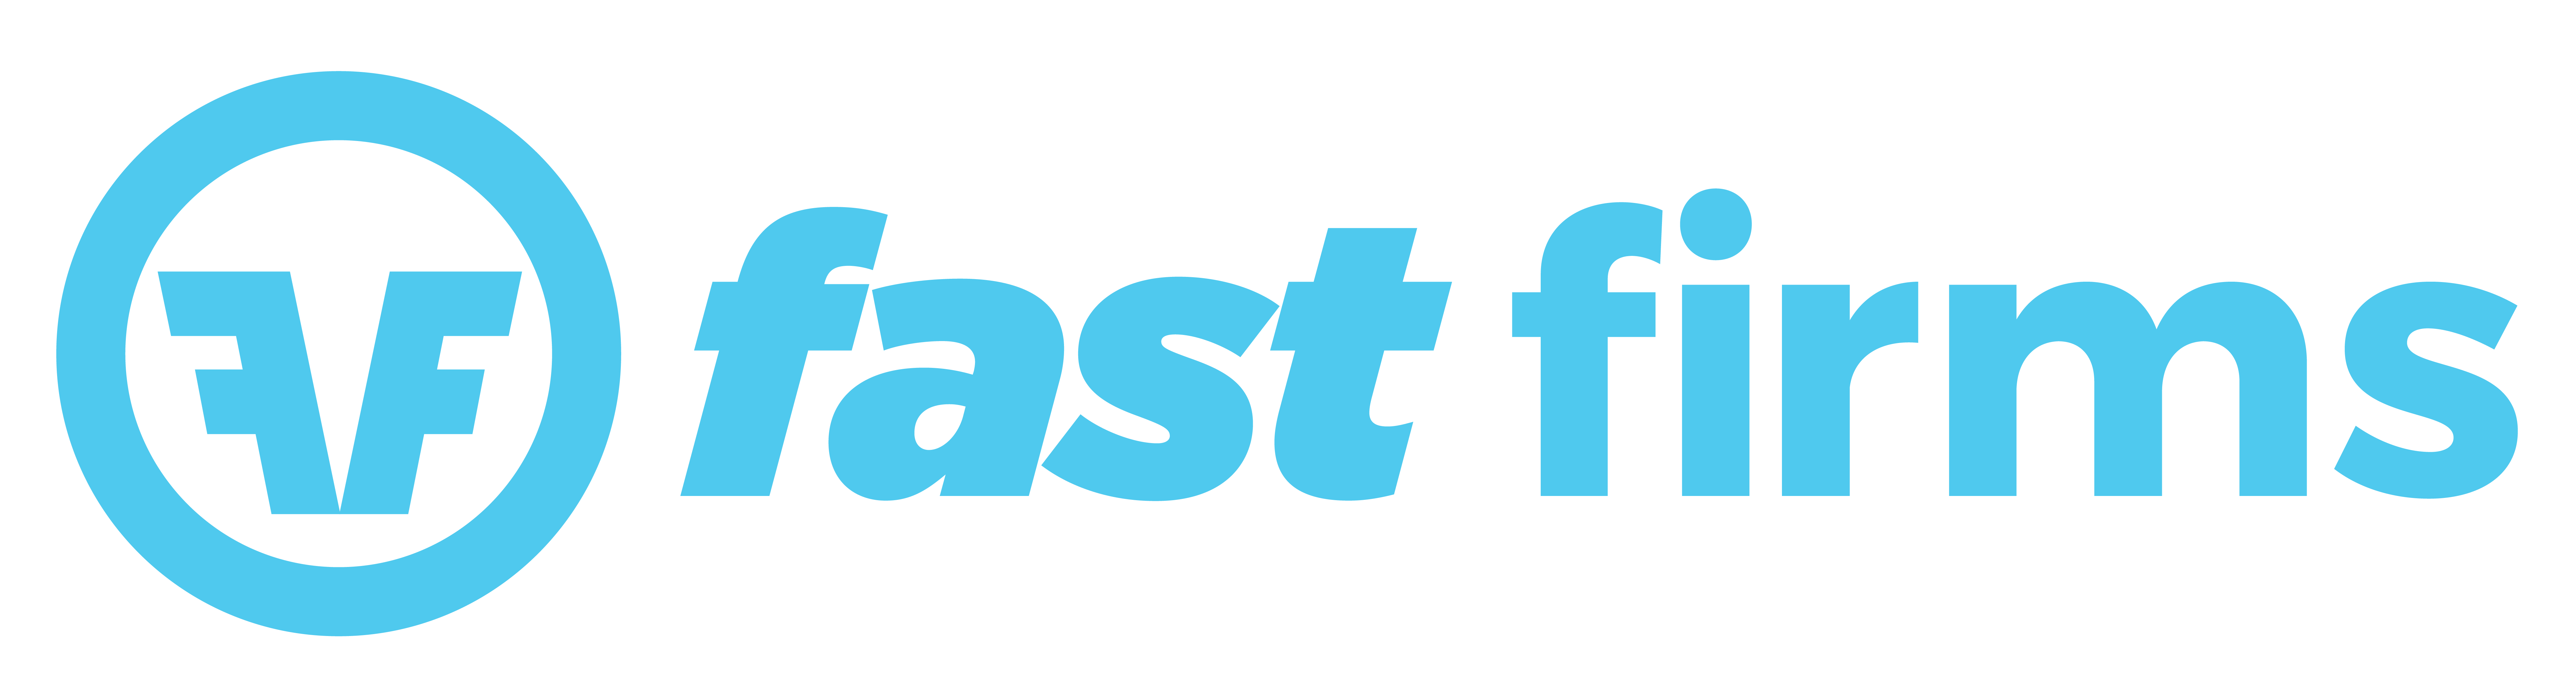 https://lawganised.com.au/wp-content/uploads/2020/10/Fast-Firms-CMYK-Logo-Final-29072019-copy.png